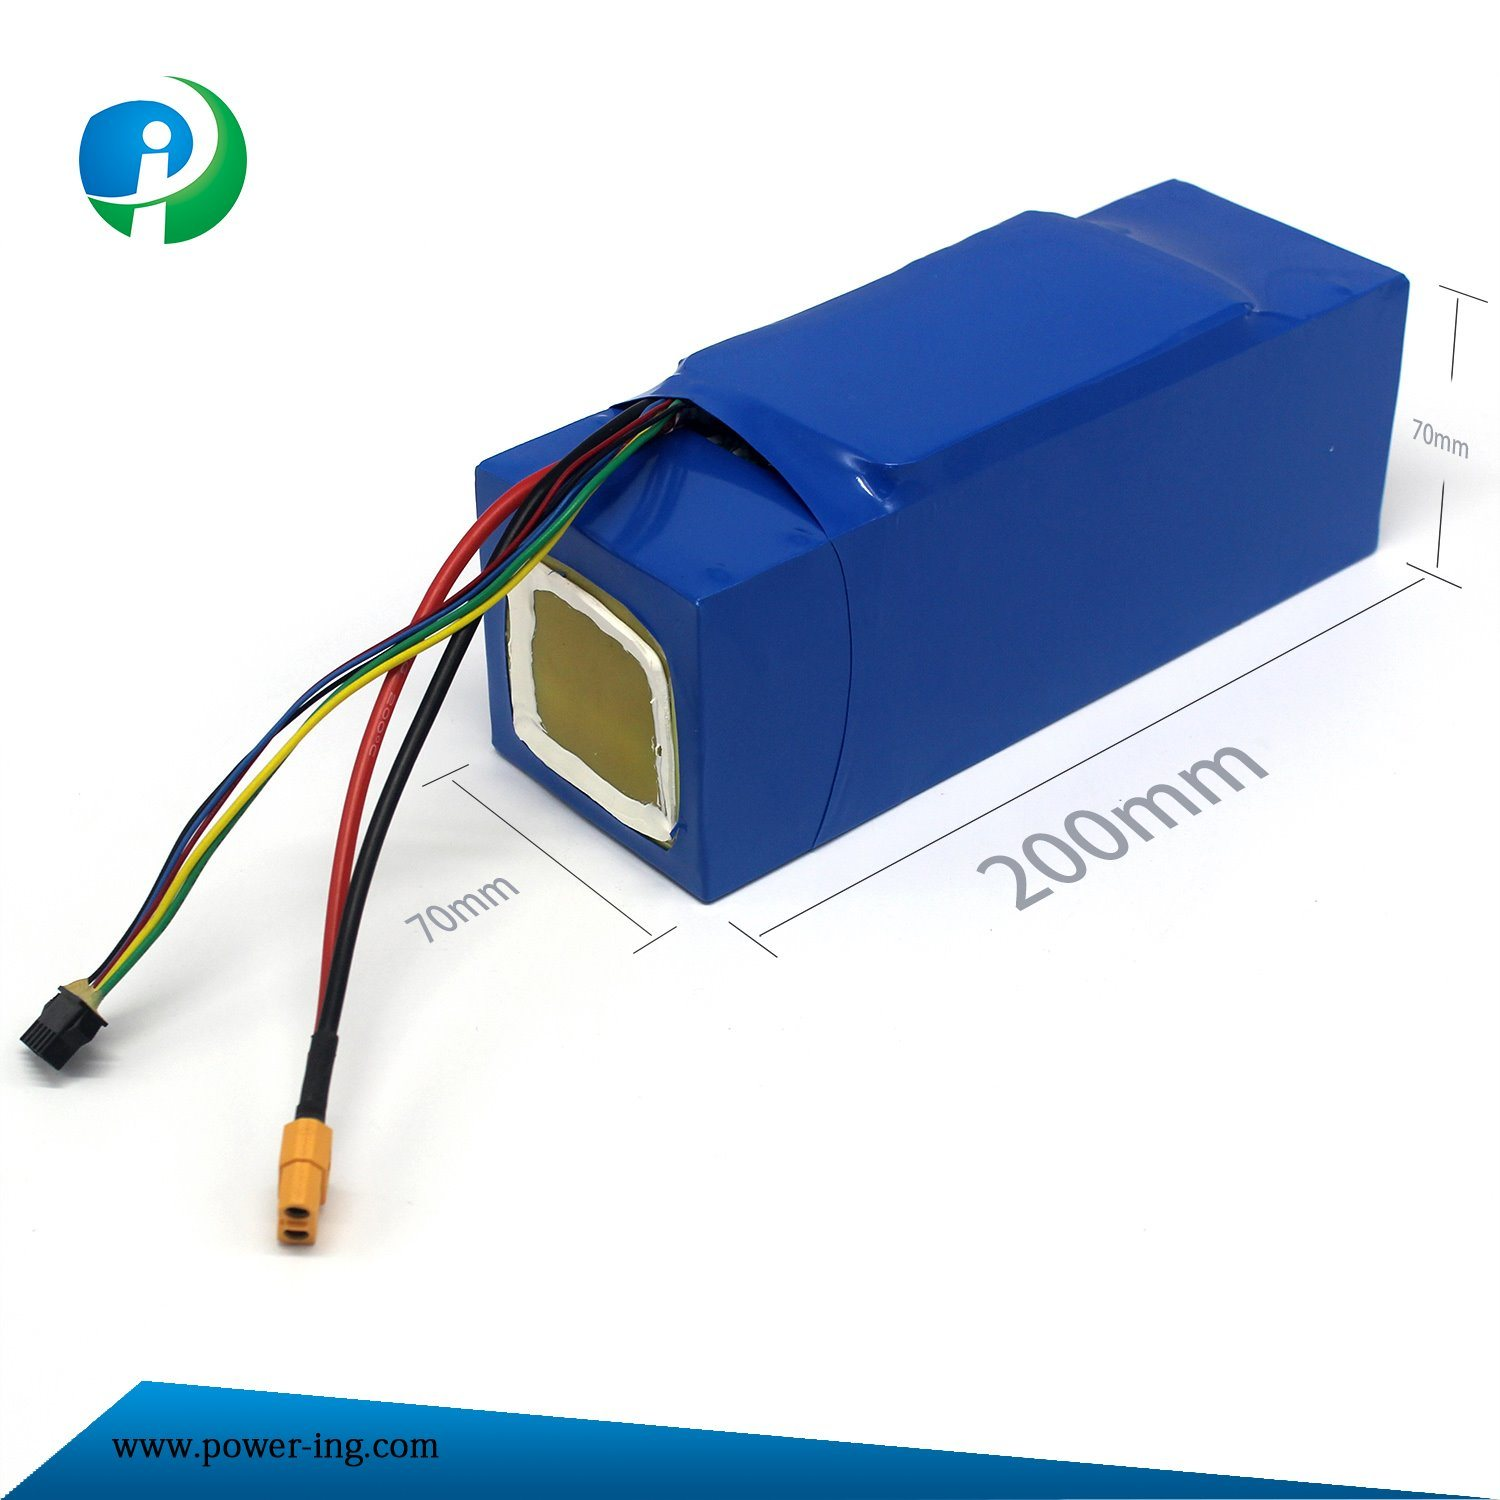 24V Ce High Quality Li-ion Battery for Garden Tools